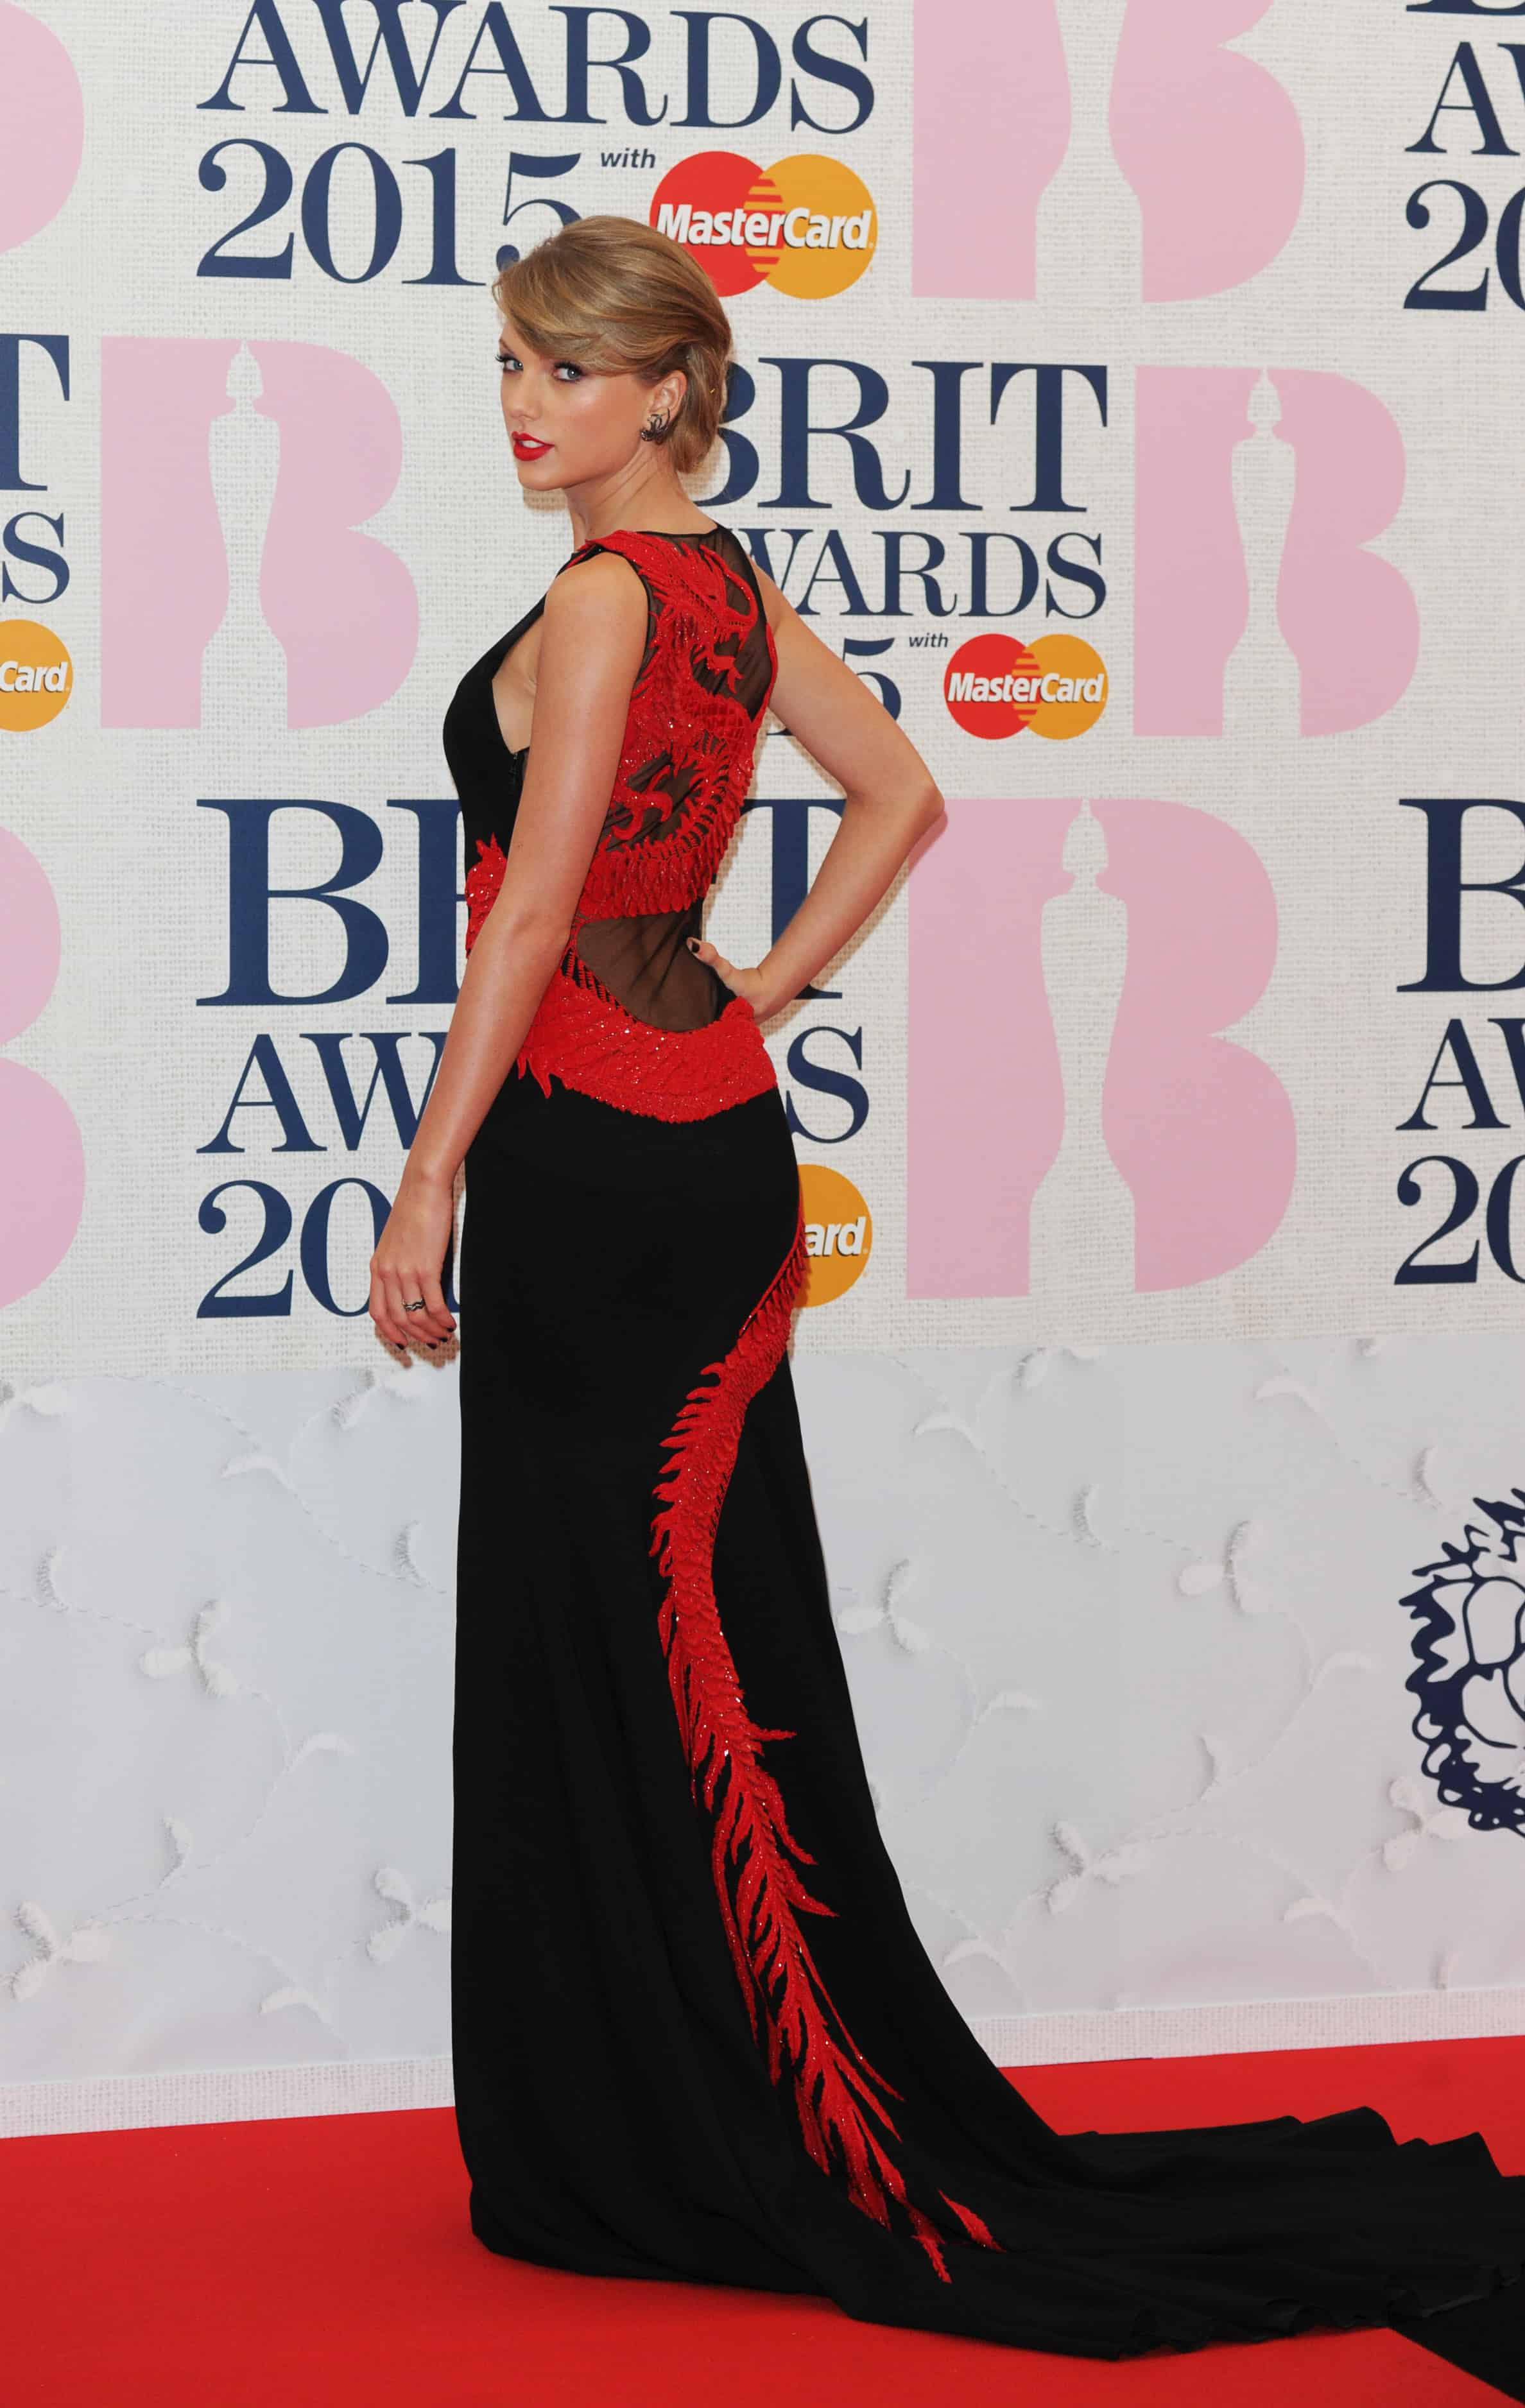 The BRIT Awards 2015 - Taylor Swift